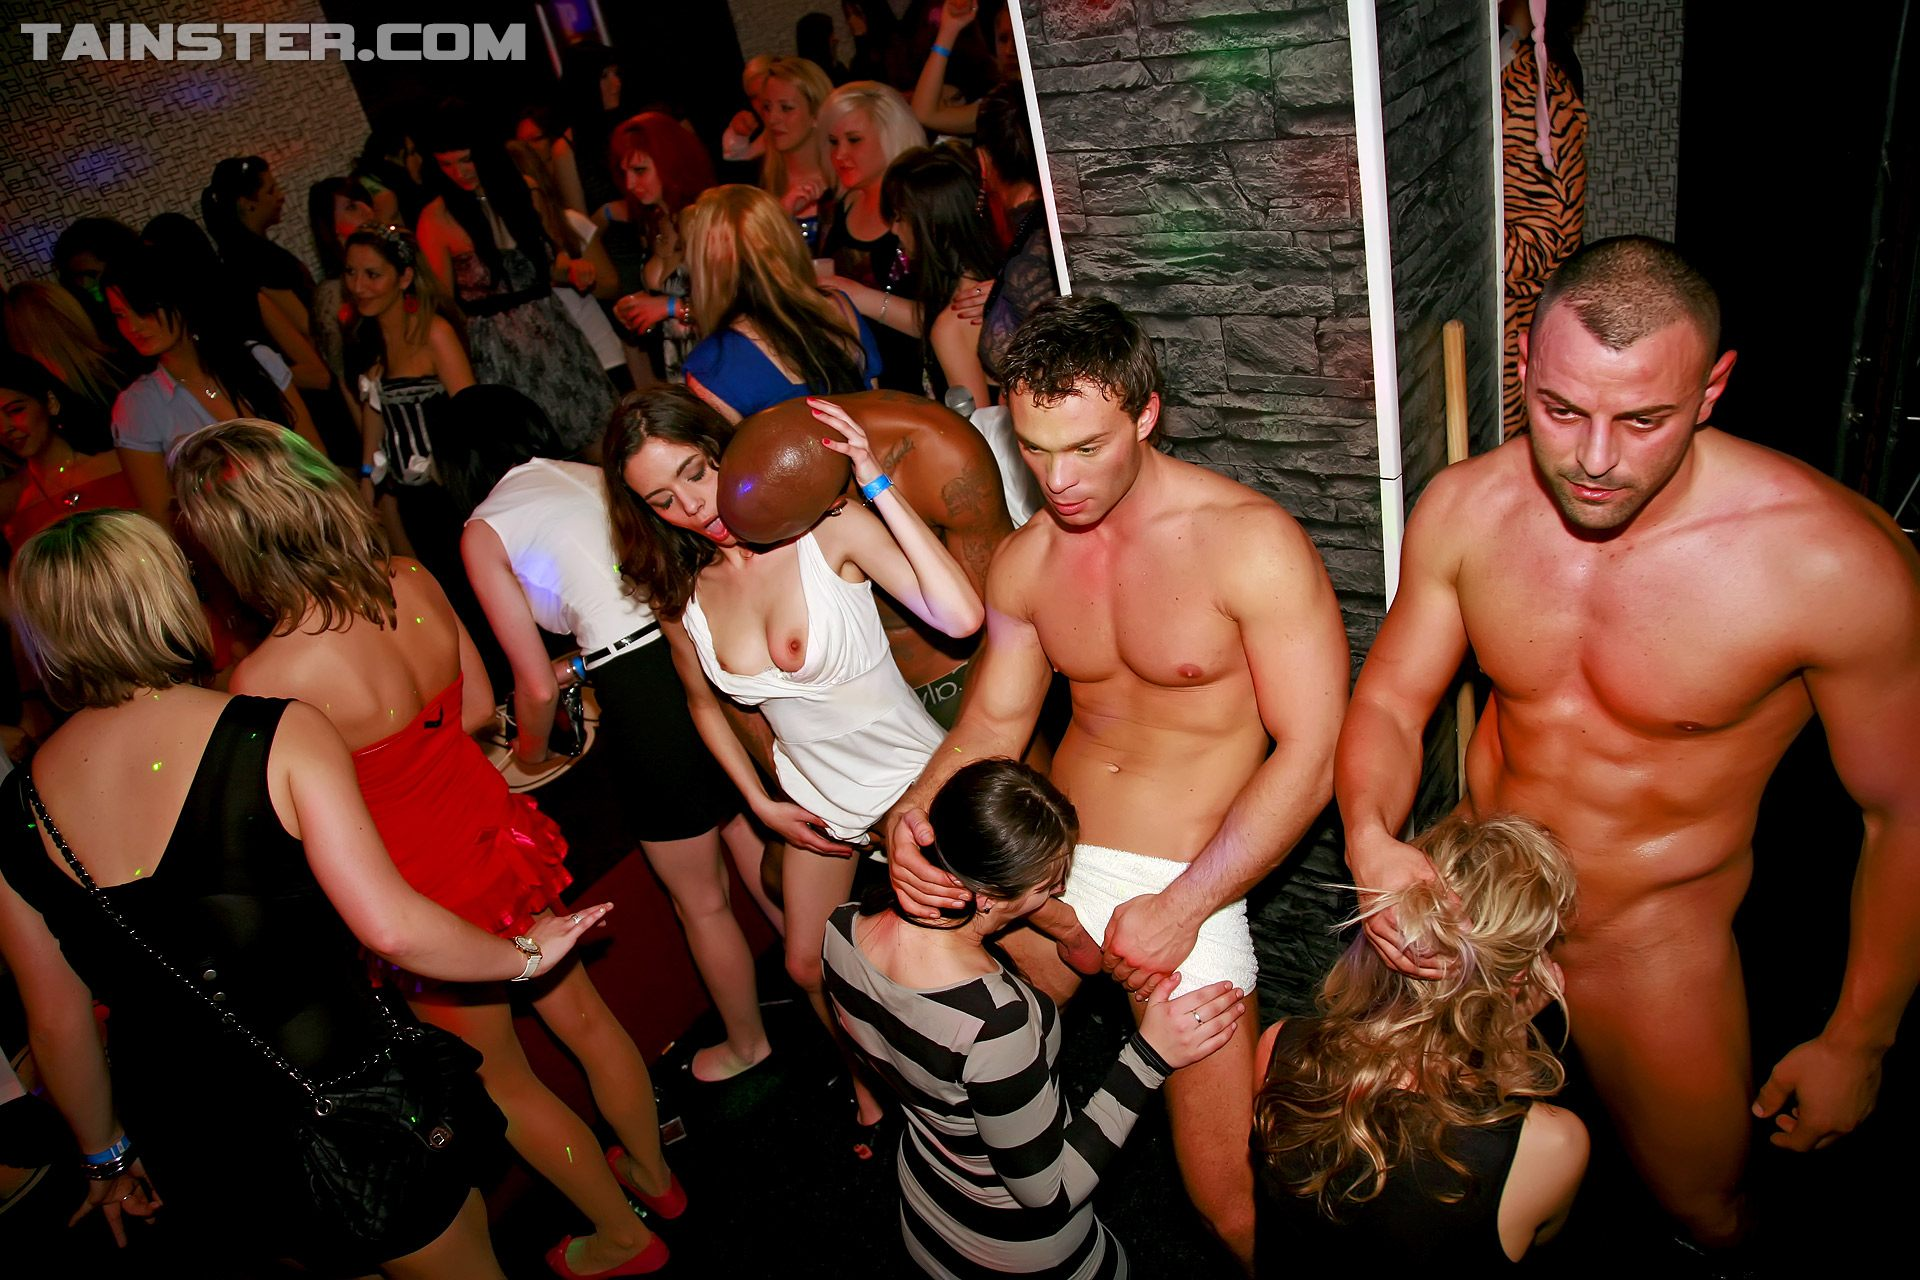 Cfnm hen party with drunk cougars 8